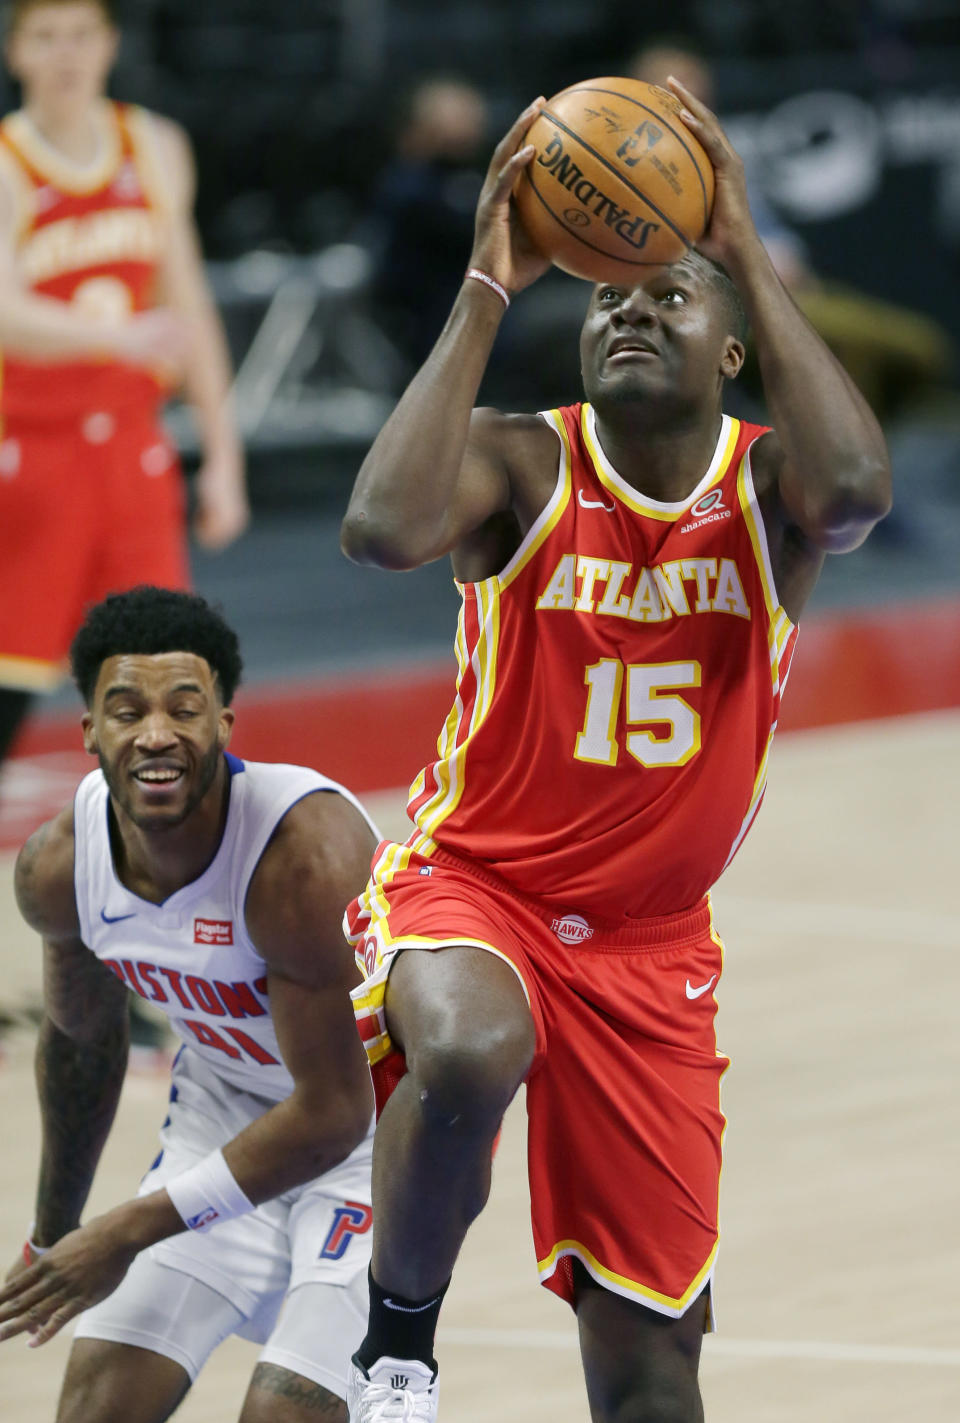 Atlanta Hawks center Clint Capela (15) goes to the basket past Detroit Pistons forward Saddiq Bey (41) during the first quarter of an NBA basketball game Monday, April 26, 2021, in Detroit. (AP Photo/Duane Burleson)